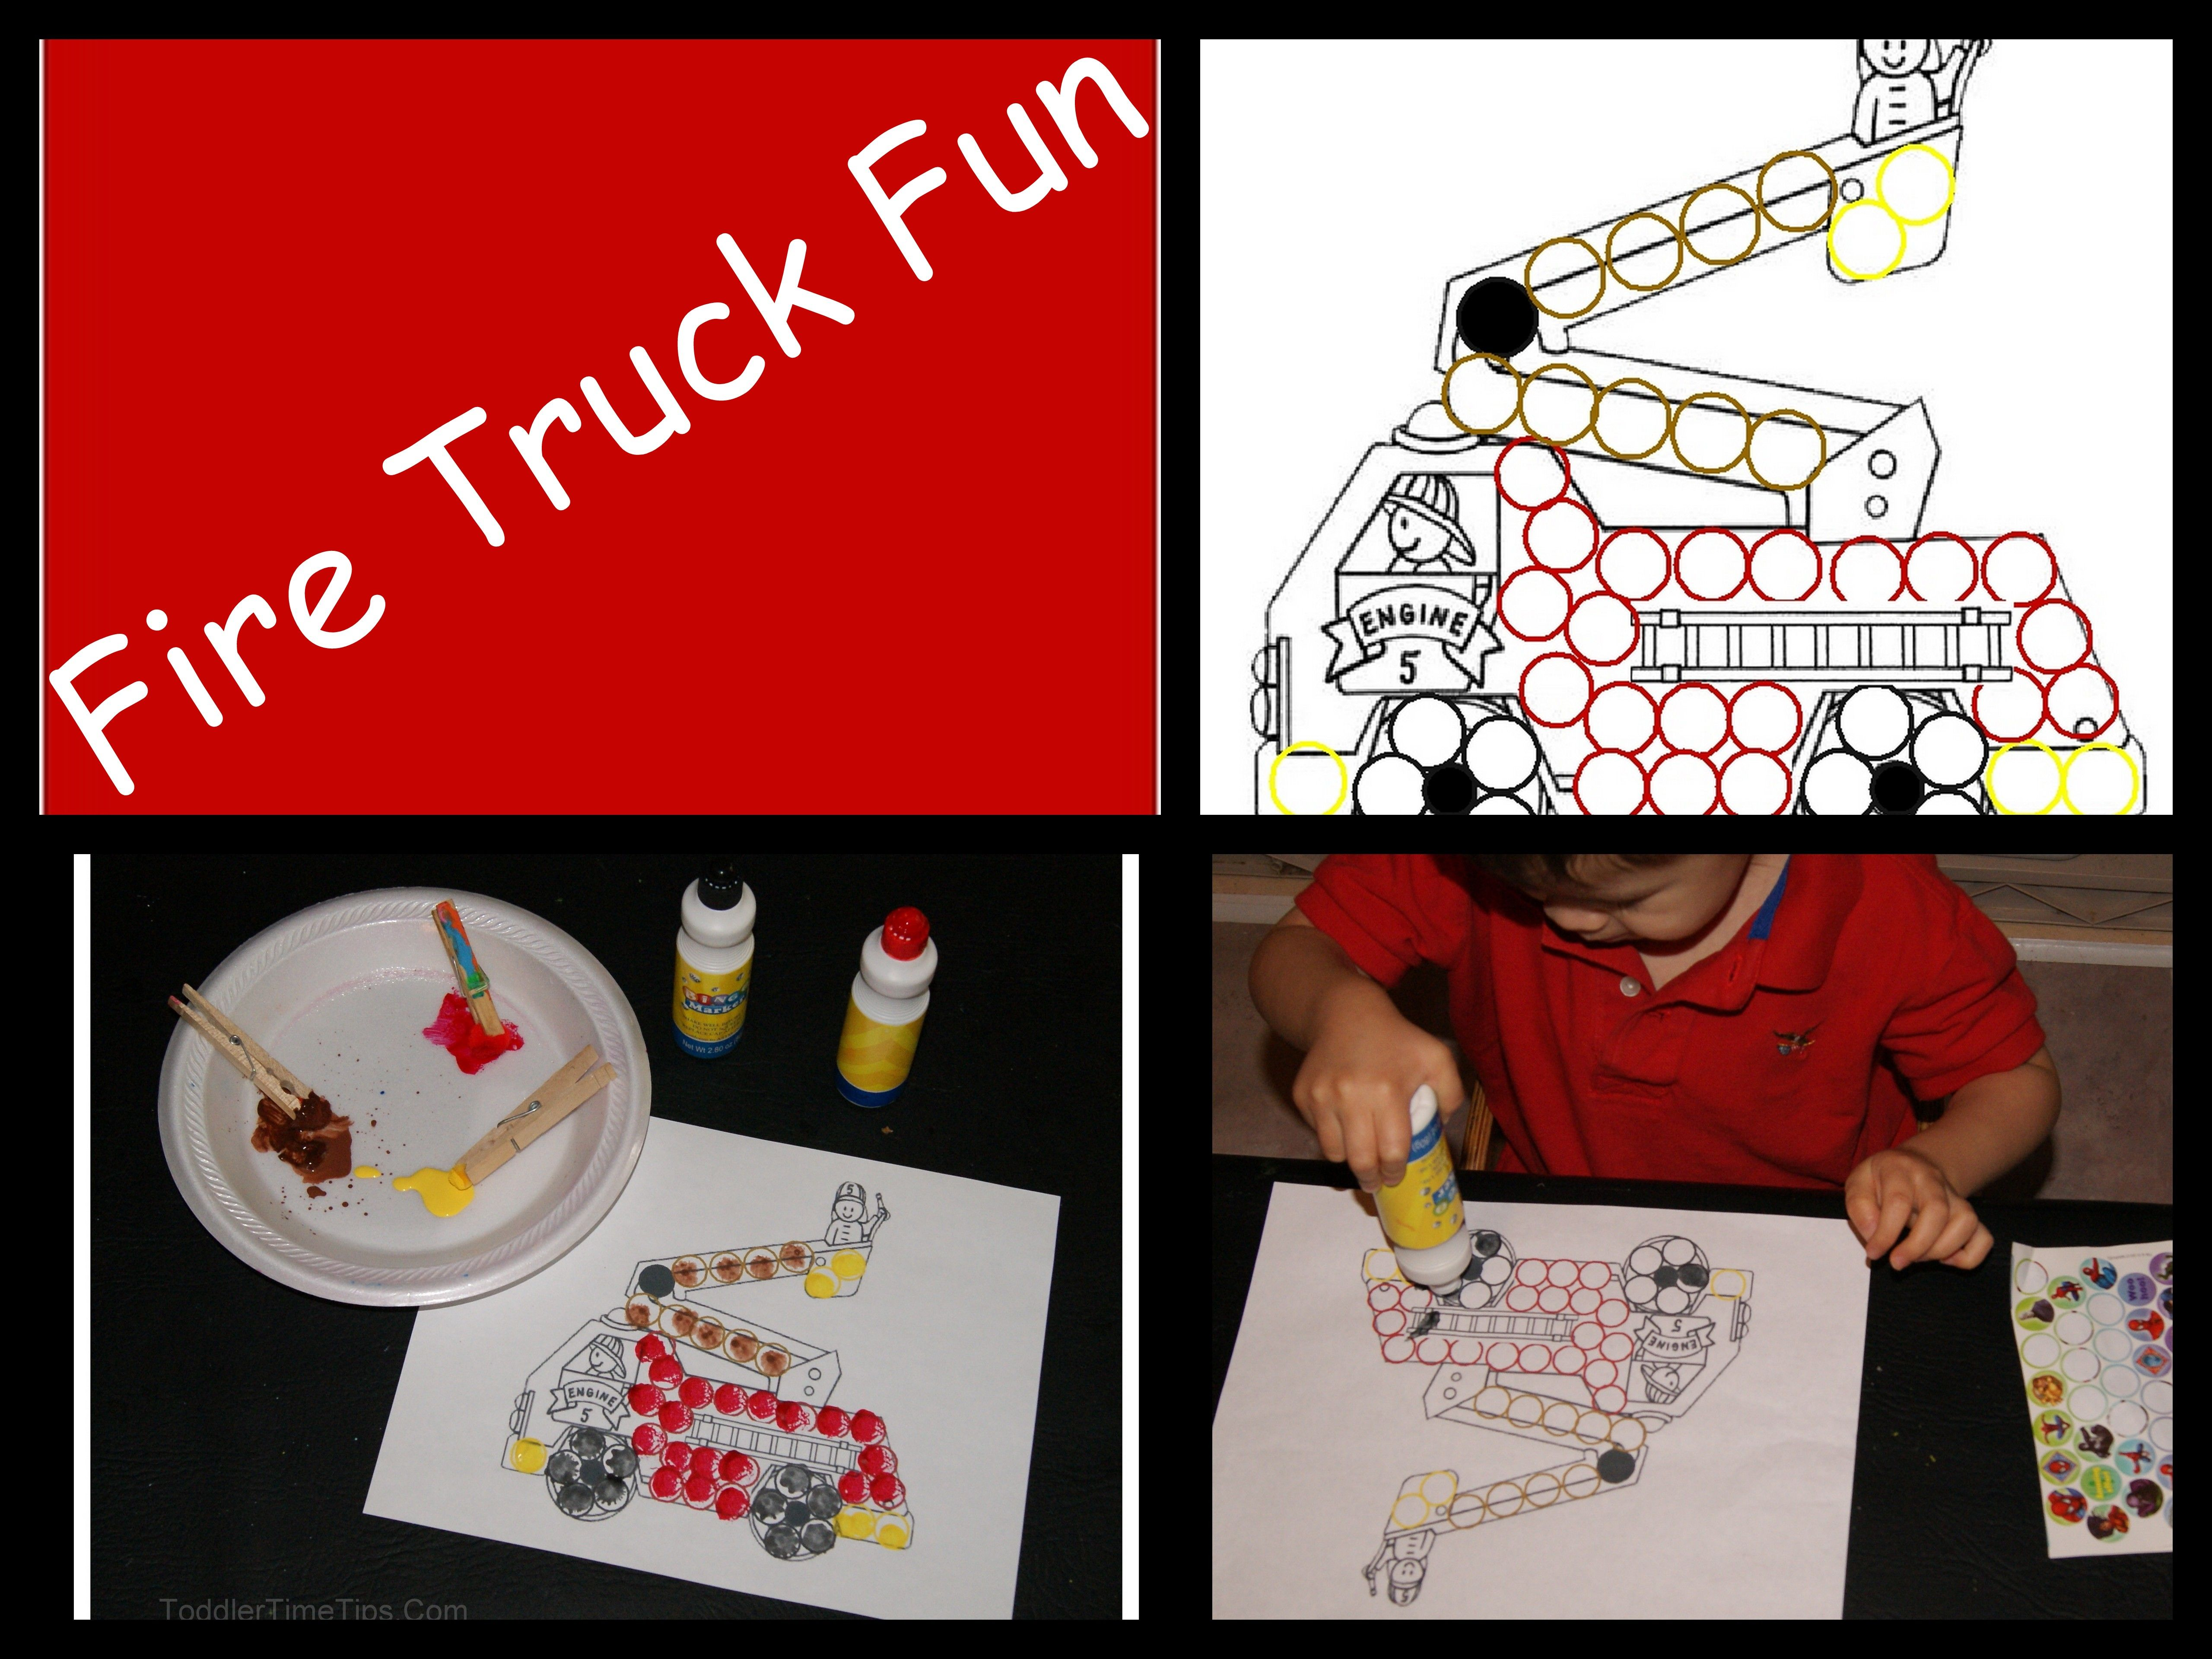 Pin By Toddlertime Tips On Diy Projects For Toddlers